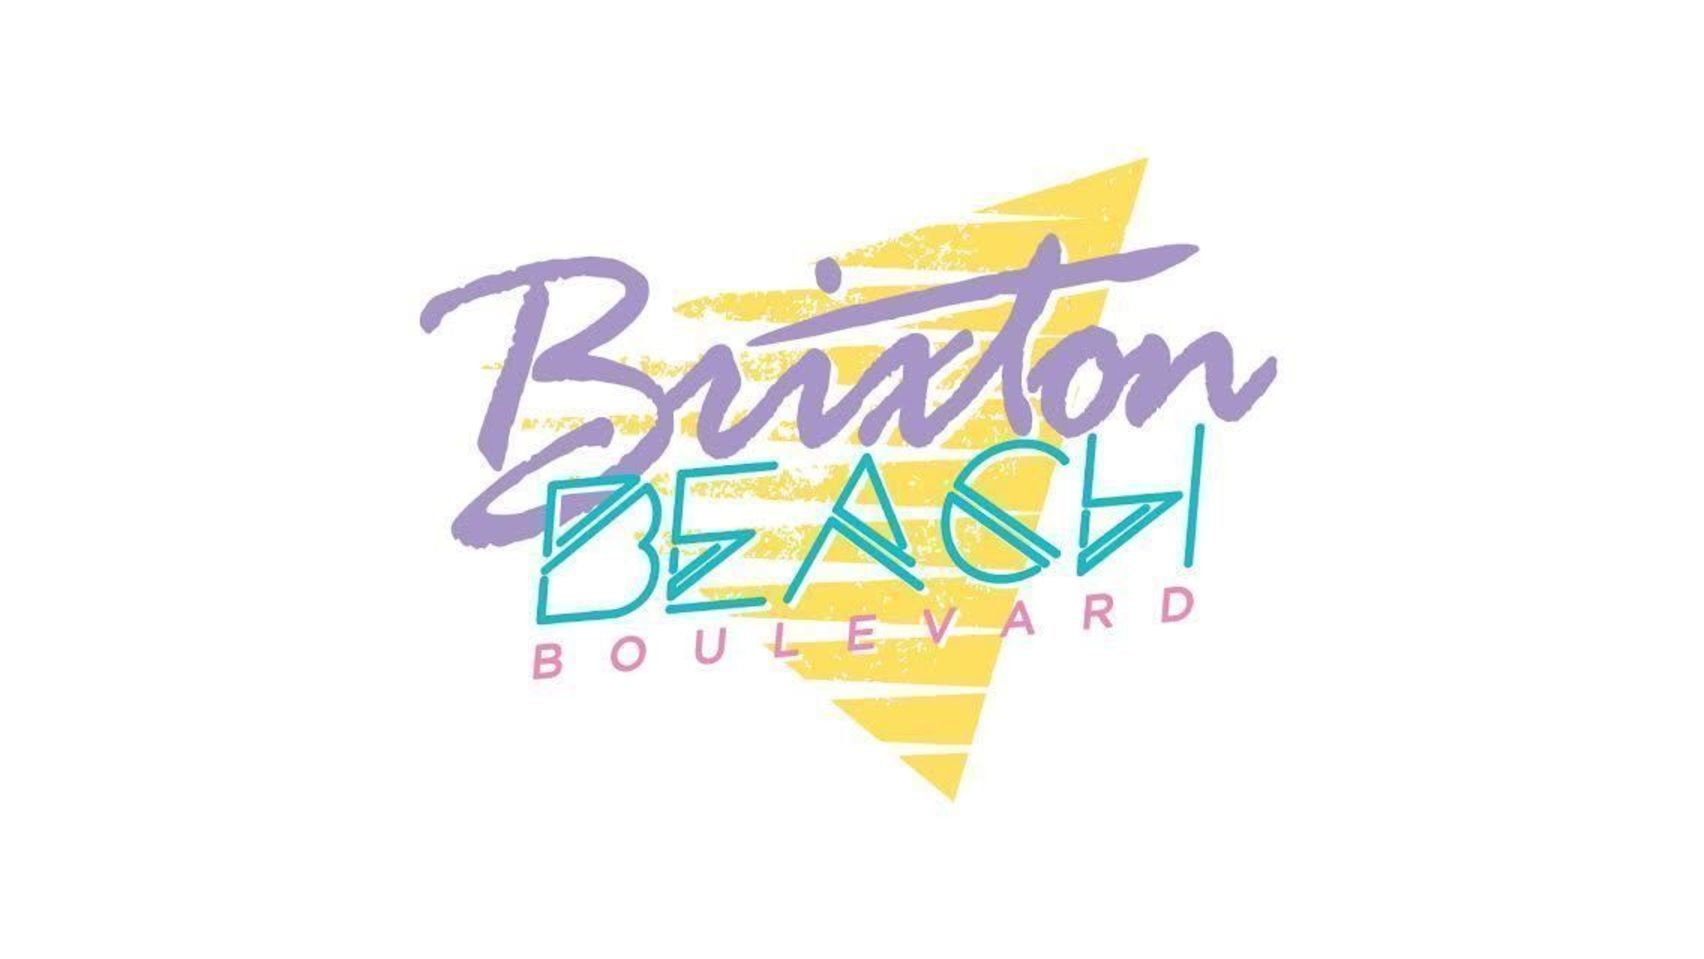 Exclusive Hire, Brixton Beach Boulevard